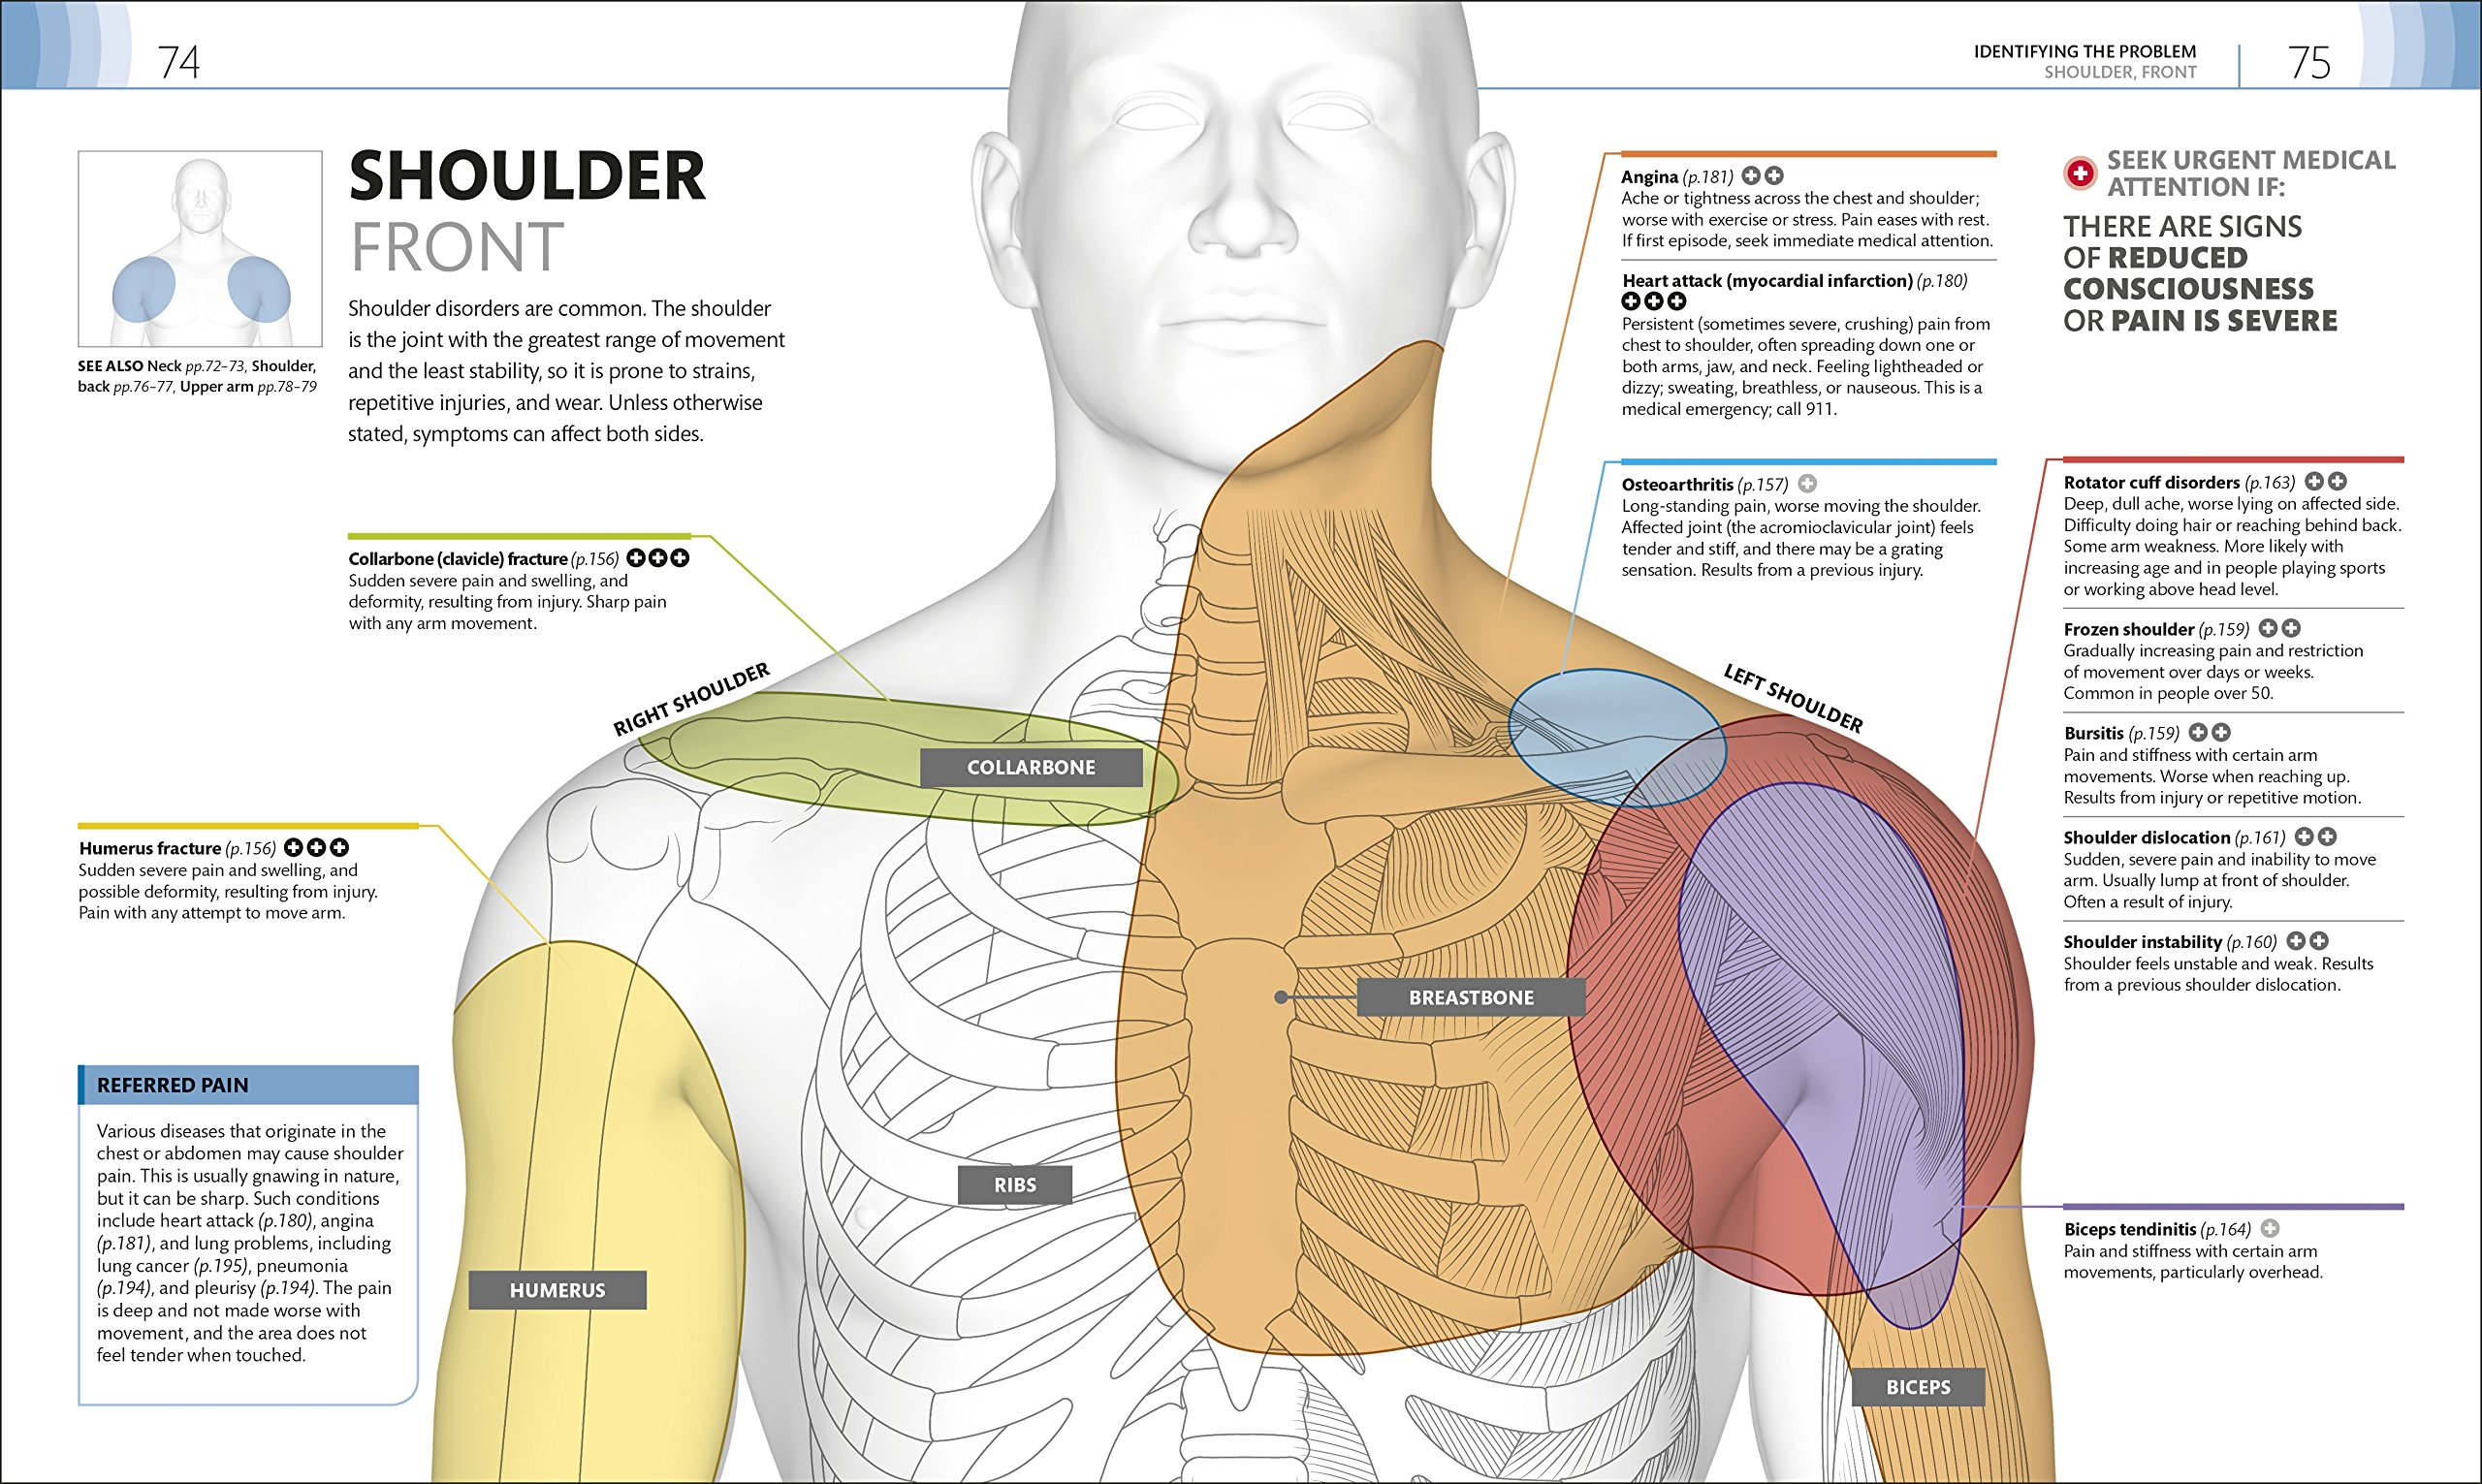 Medical Symptoms A Visual Guide The Easy Way To Identify Medical